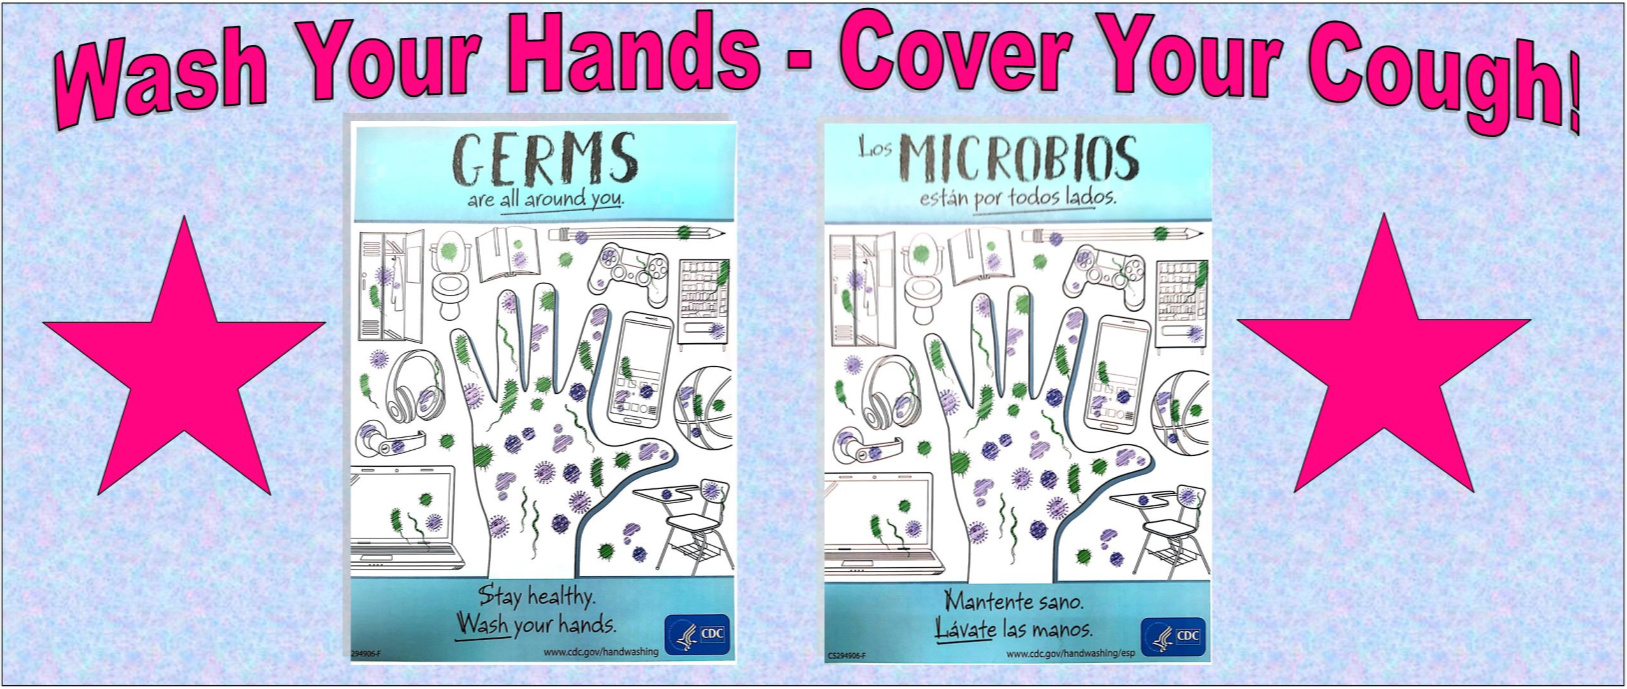 Wash Your Hands - Cover Your Cough in both English and Spanish